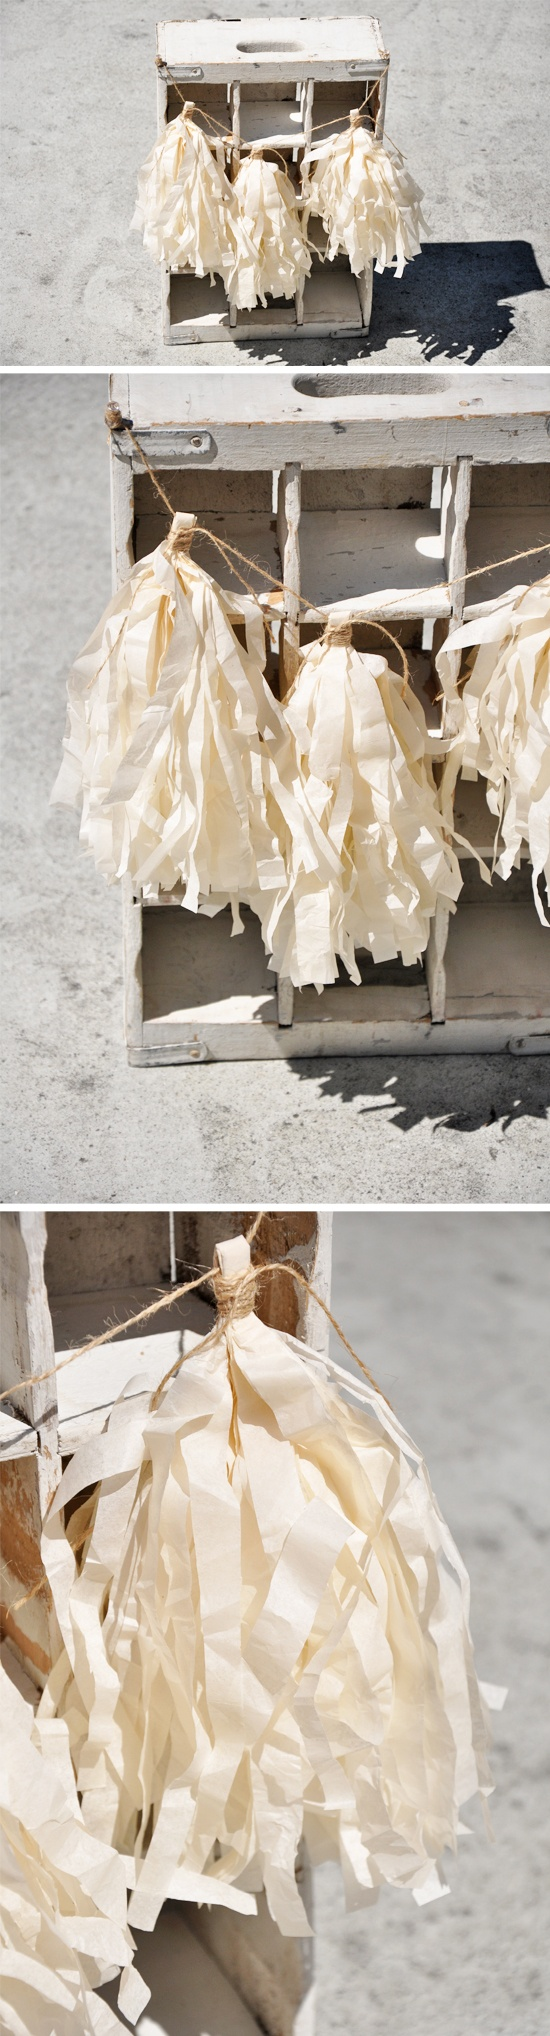 tissue paper tassels. Instead of tissue paper, we could use burlap or fabric of wedding colors